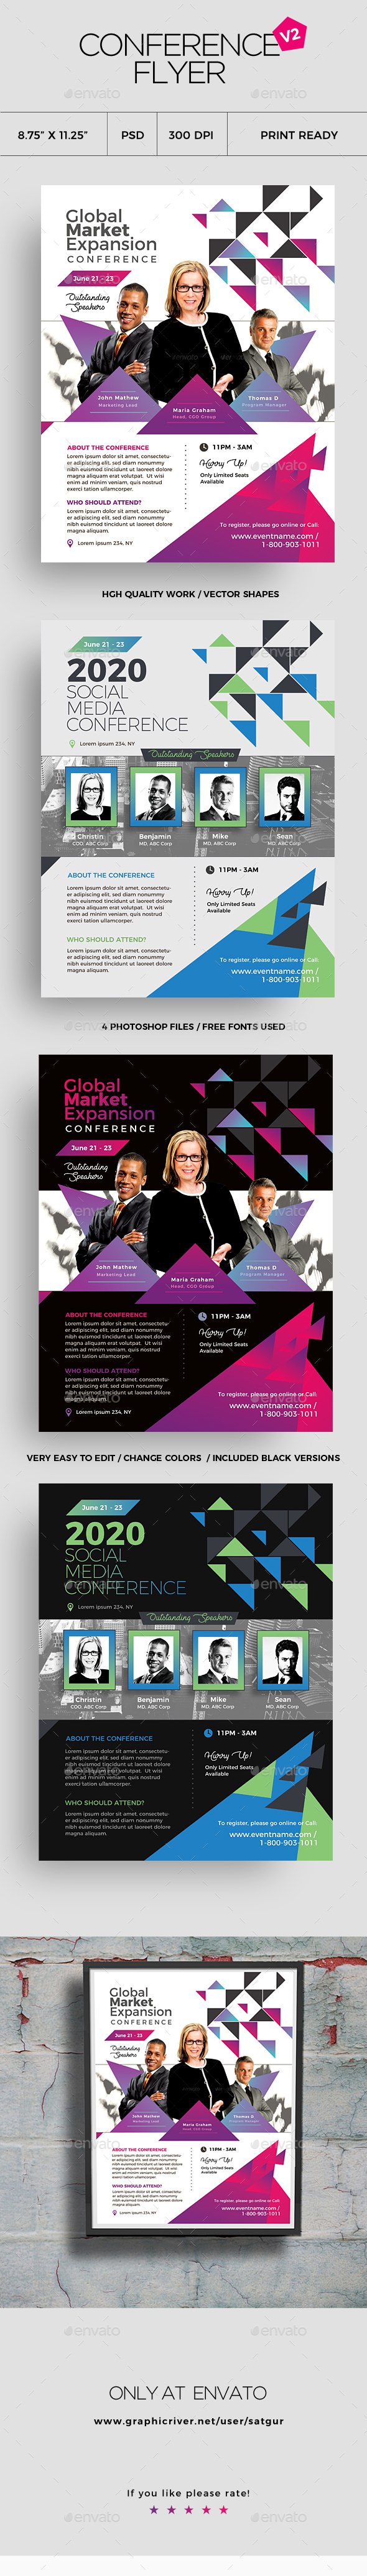 Conference Flyer Template V2 - Corporate Flyers